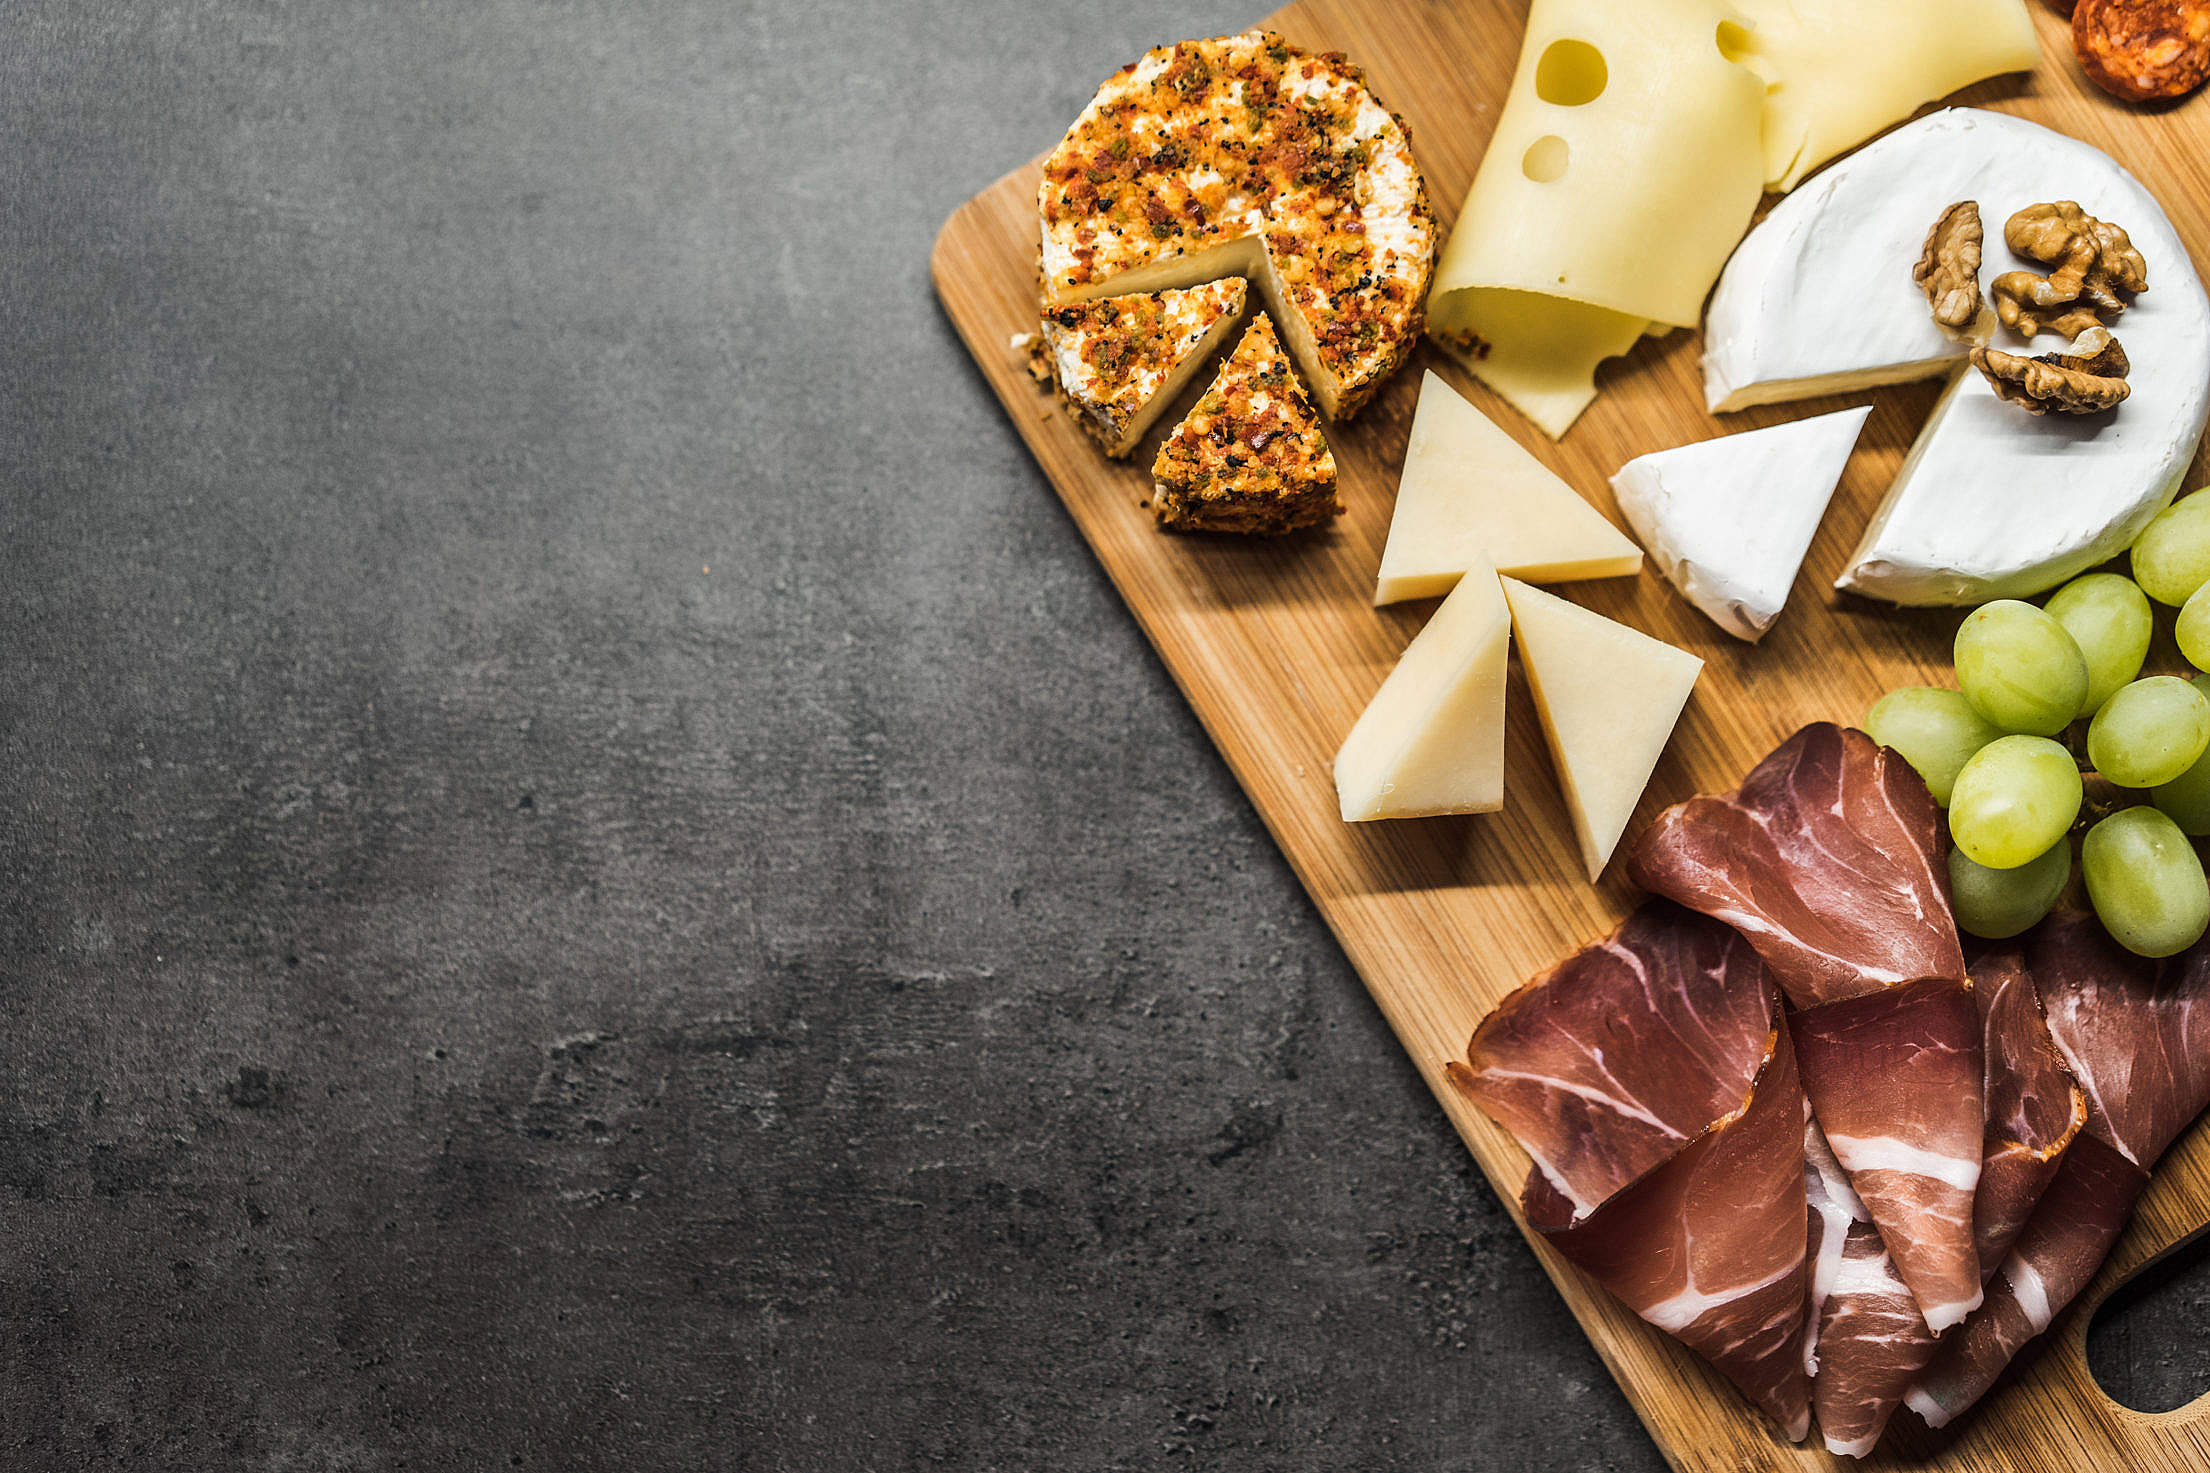 Cheese Plate Free Stock Photo